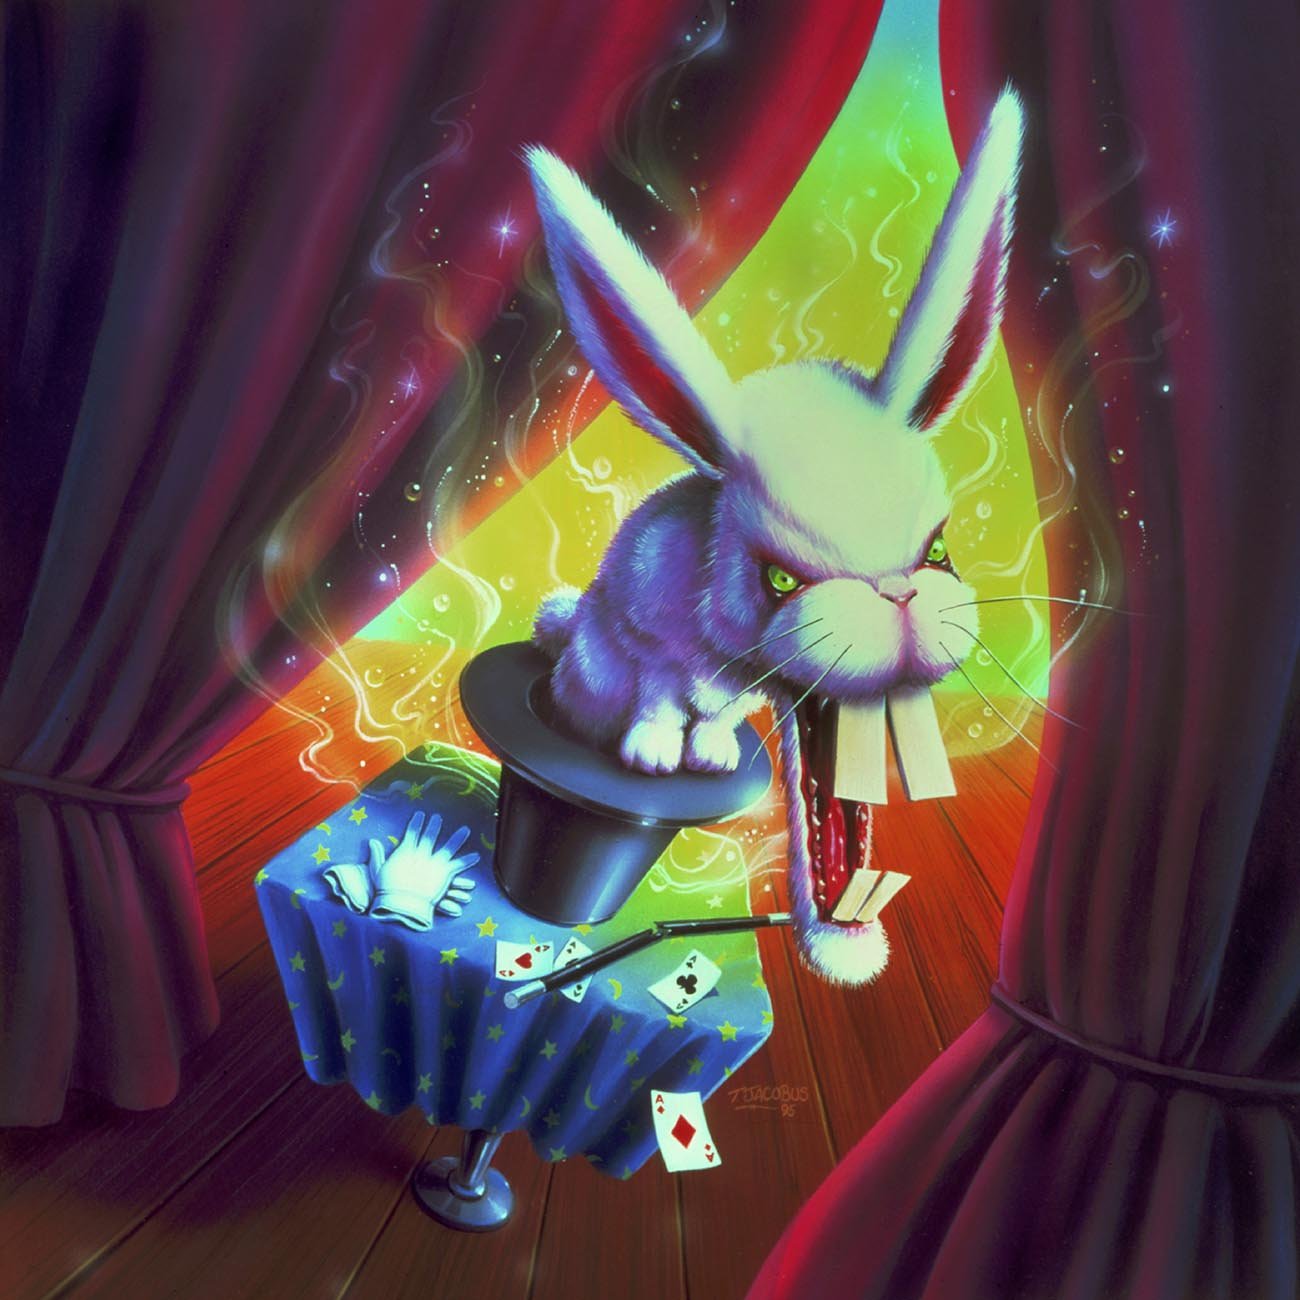 41 – Bad Hare Day